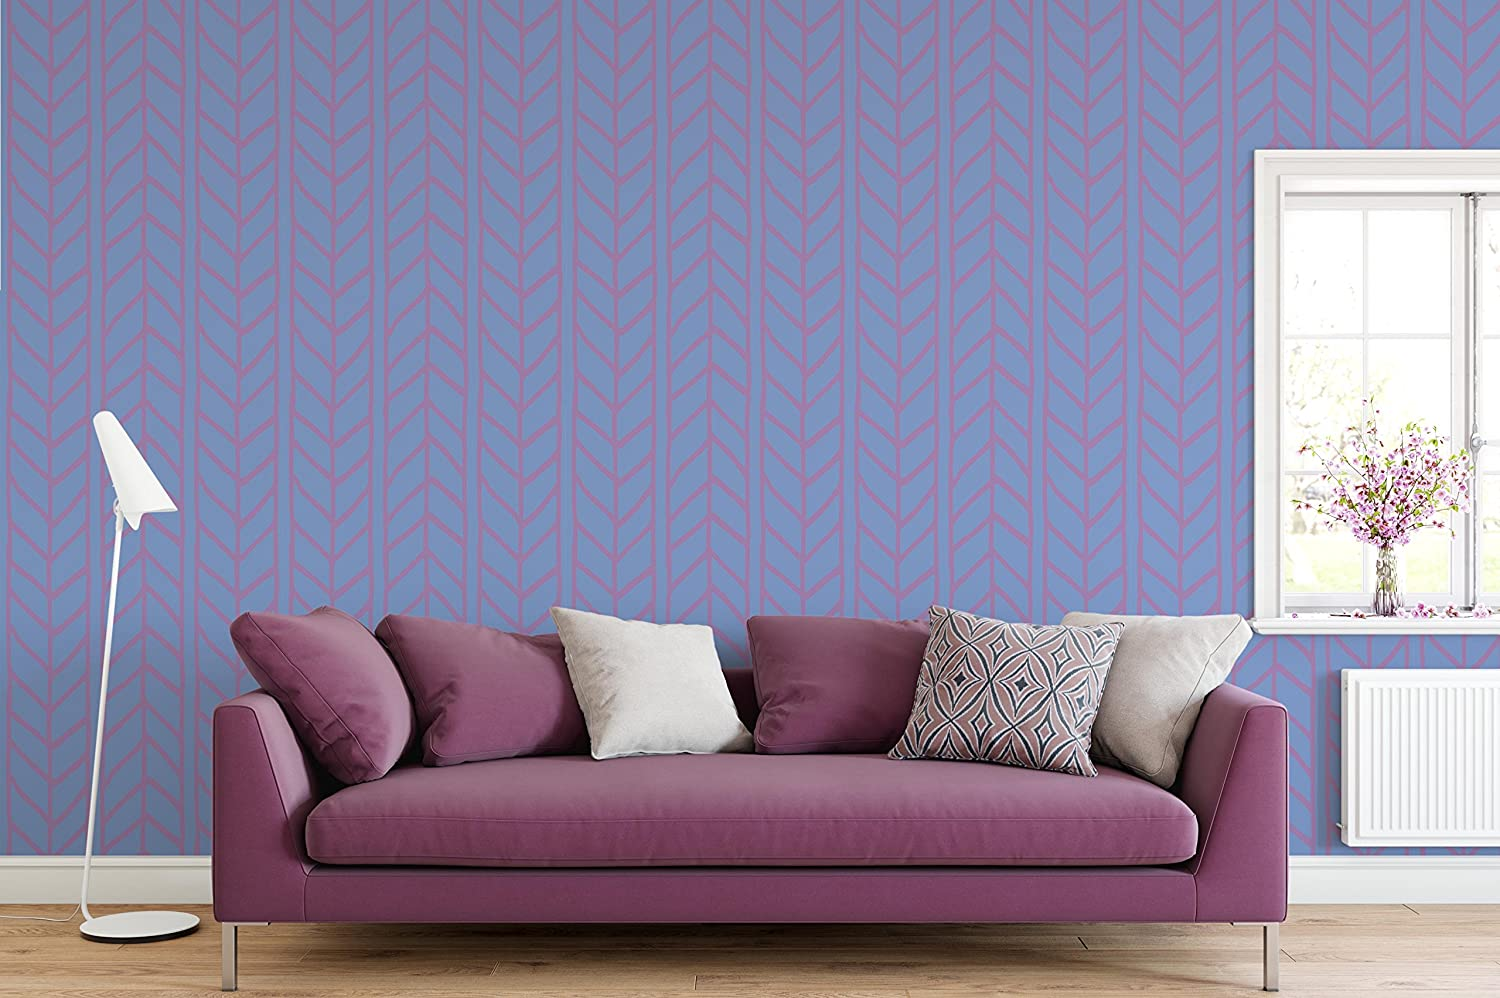 Amazon com costacover temporary removable wallpaper herringbone purple weaving braids chevron illustration geometric self adhesive wall paper vinyl